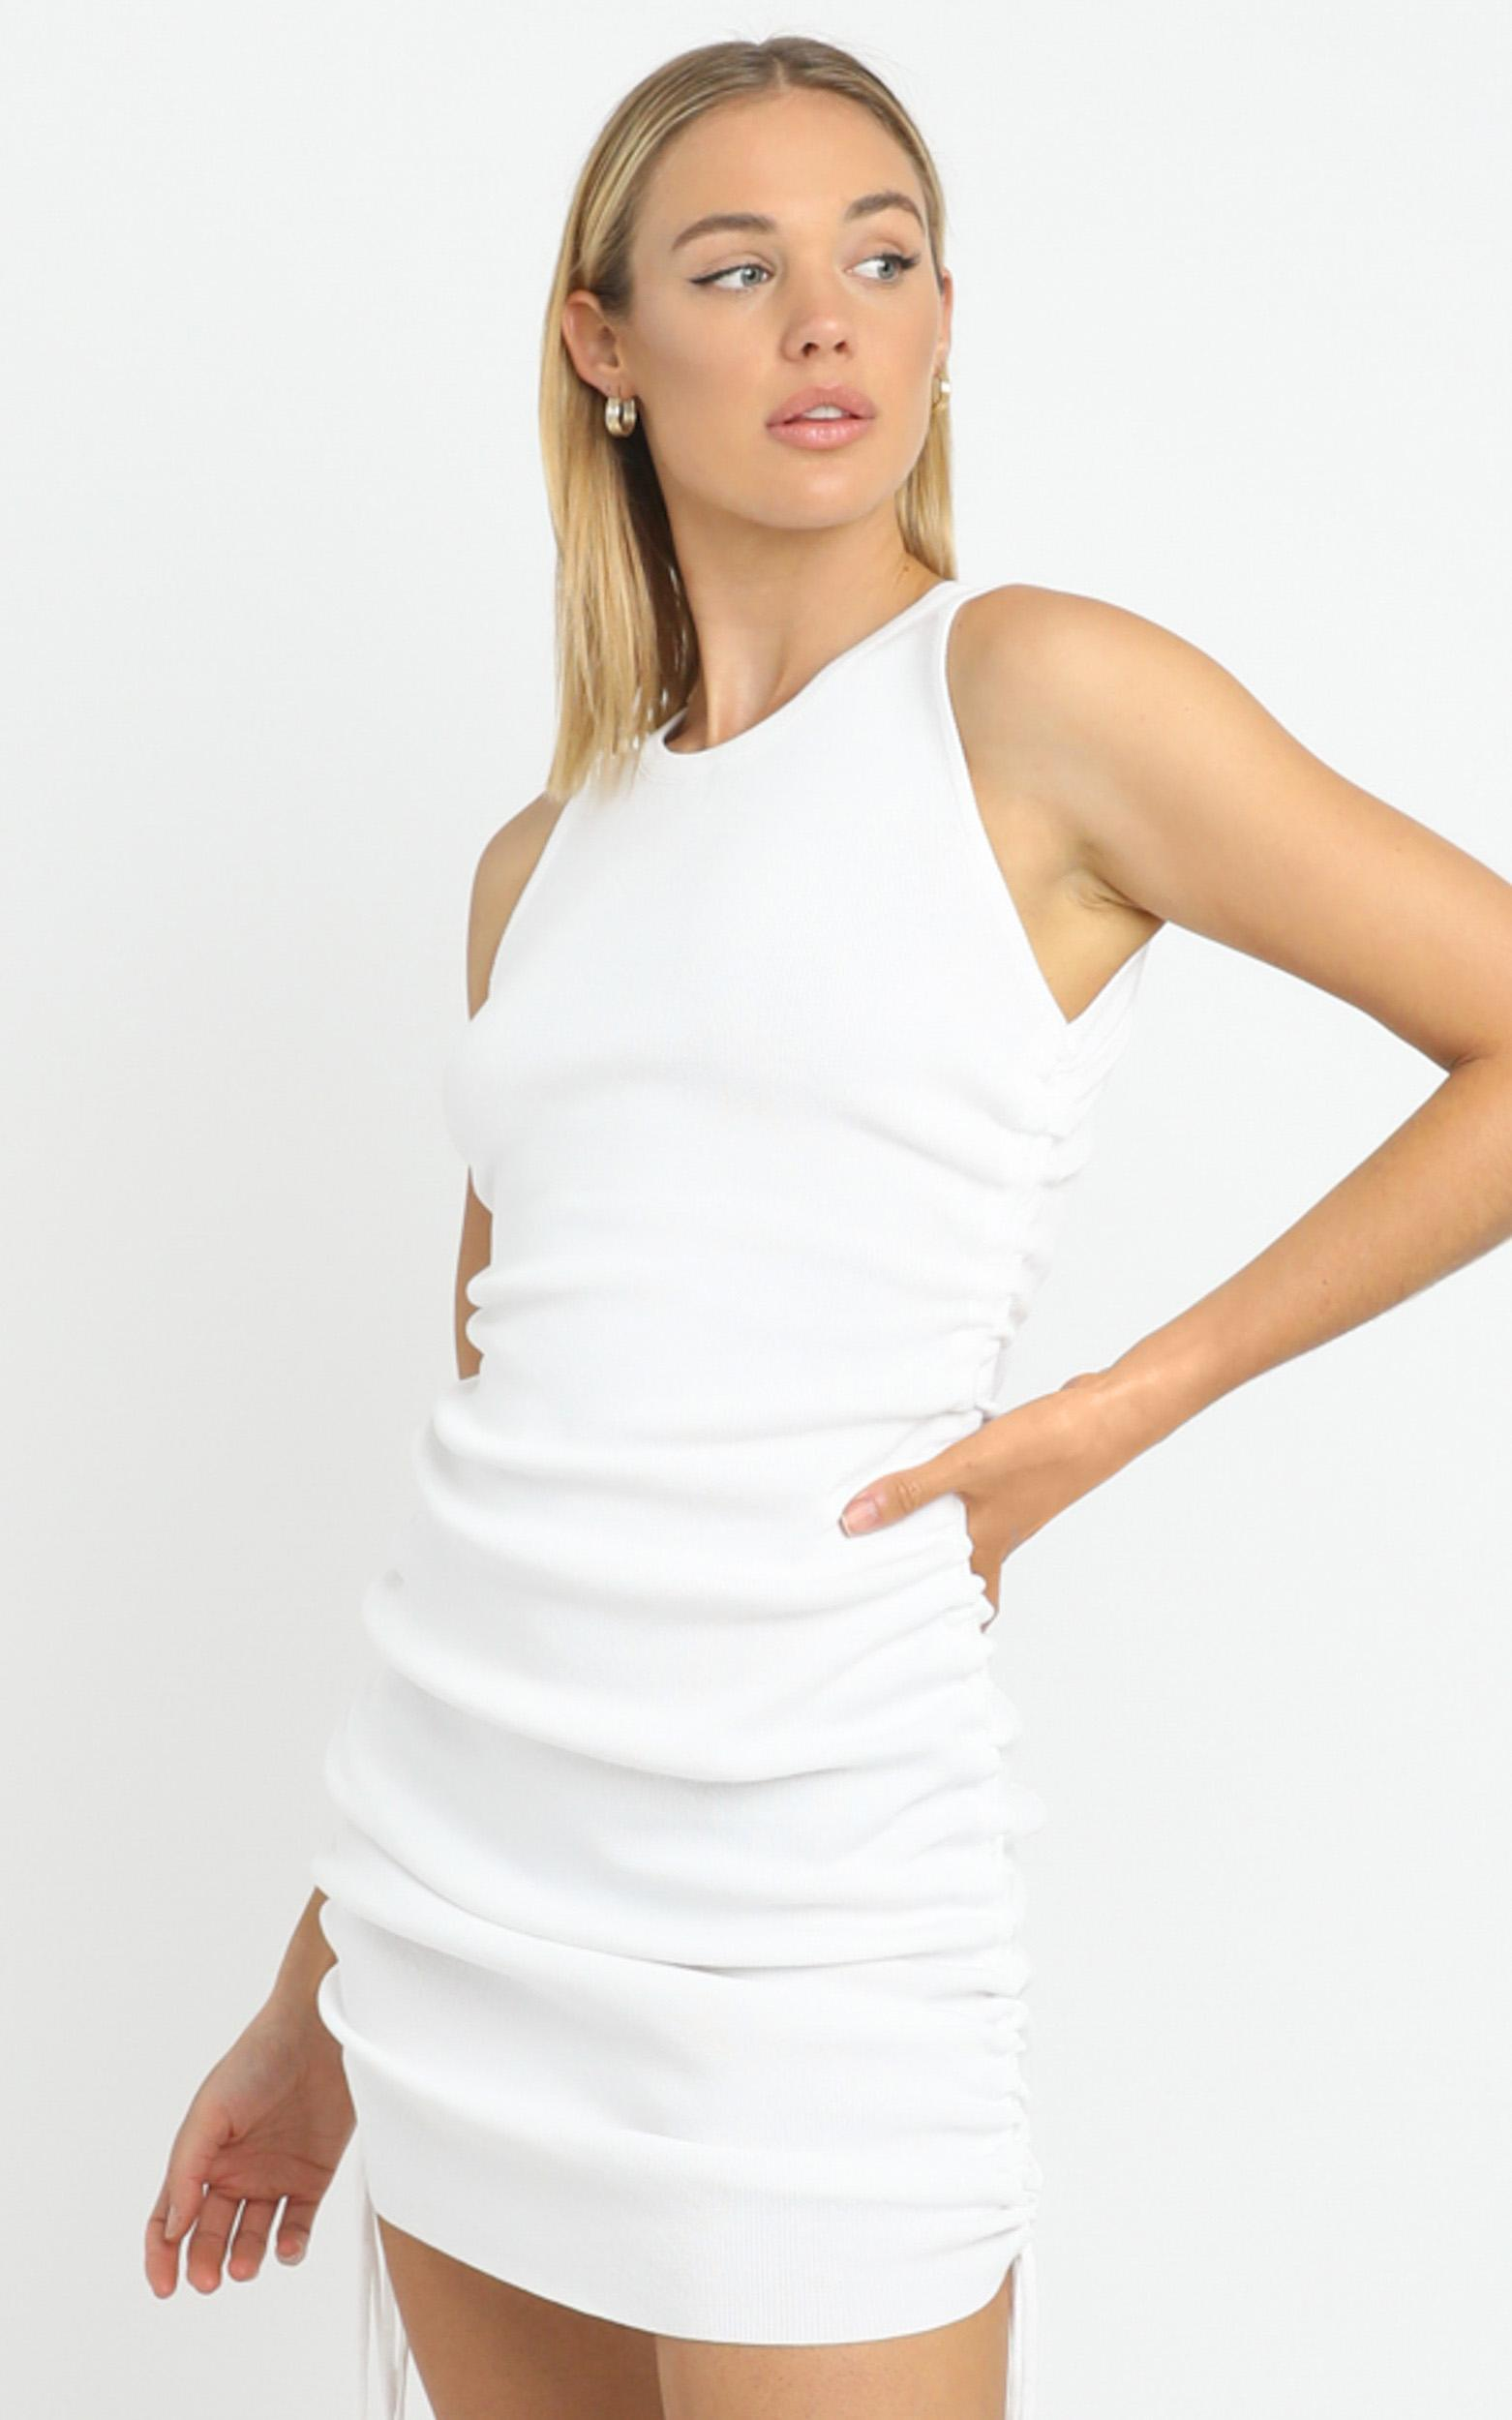 Lioness - Military Minds dress White - 12 (L), White, hi-res image number null